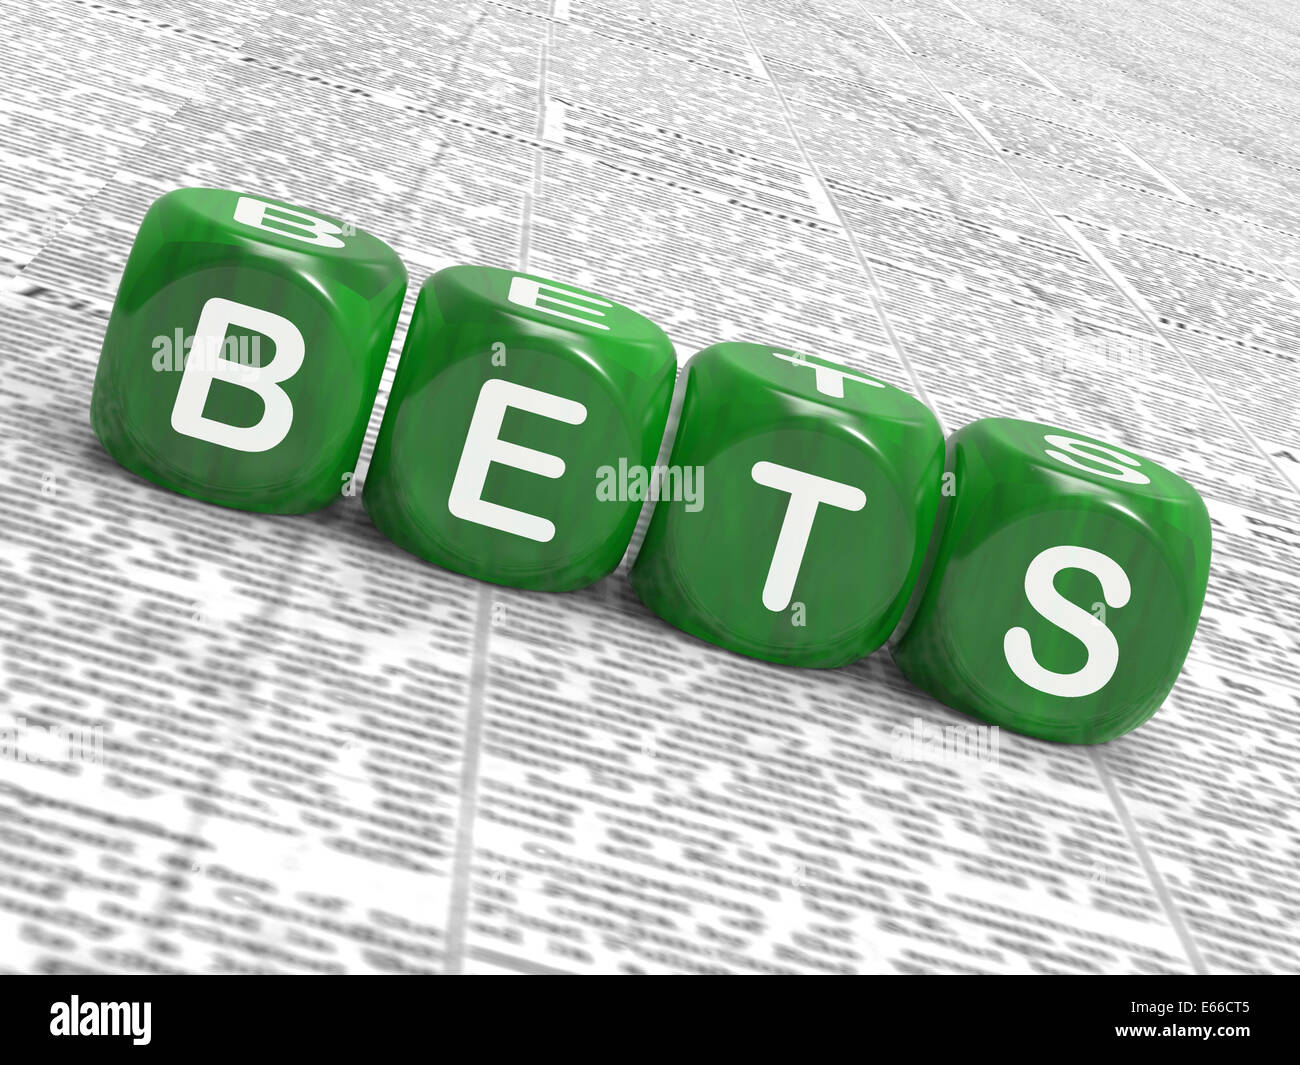 Bets Dice Showing Gambling Chance Or Sweep Stake - Stock Image